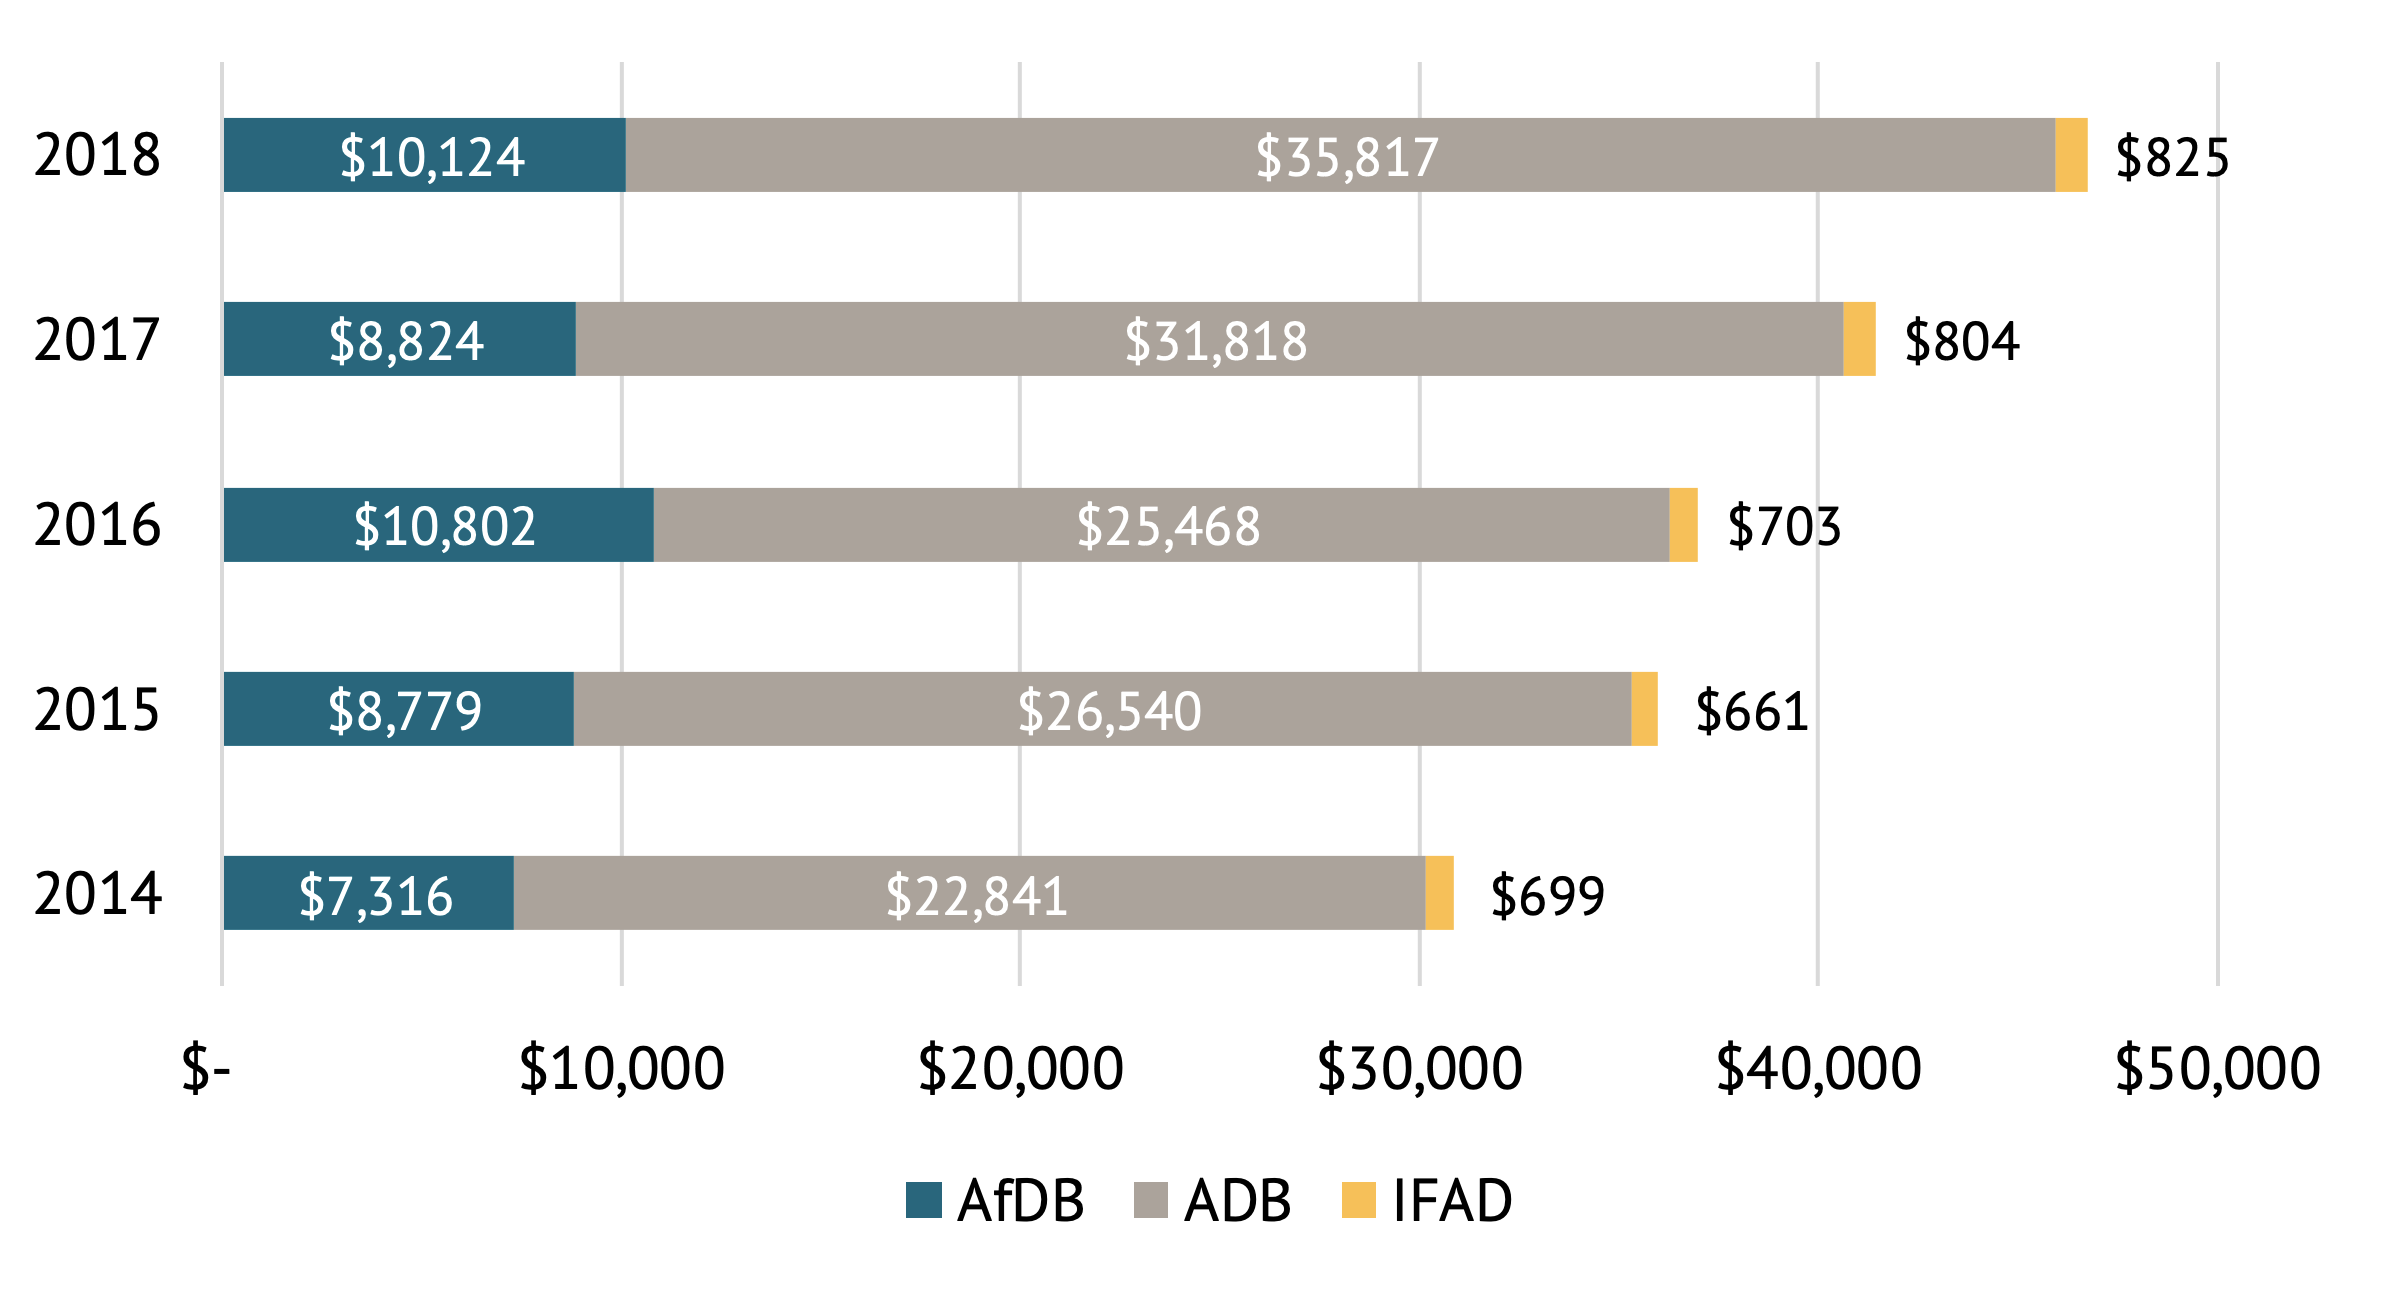 A figure showing annual financing of AfDB, ADB, and IFAD, FY2014-FY2018